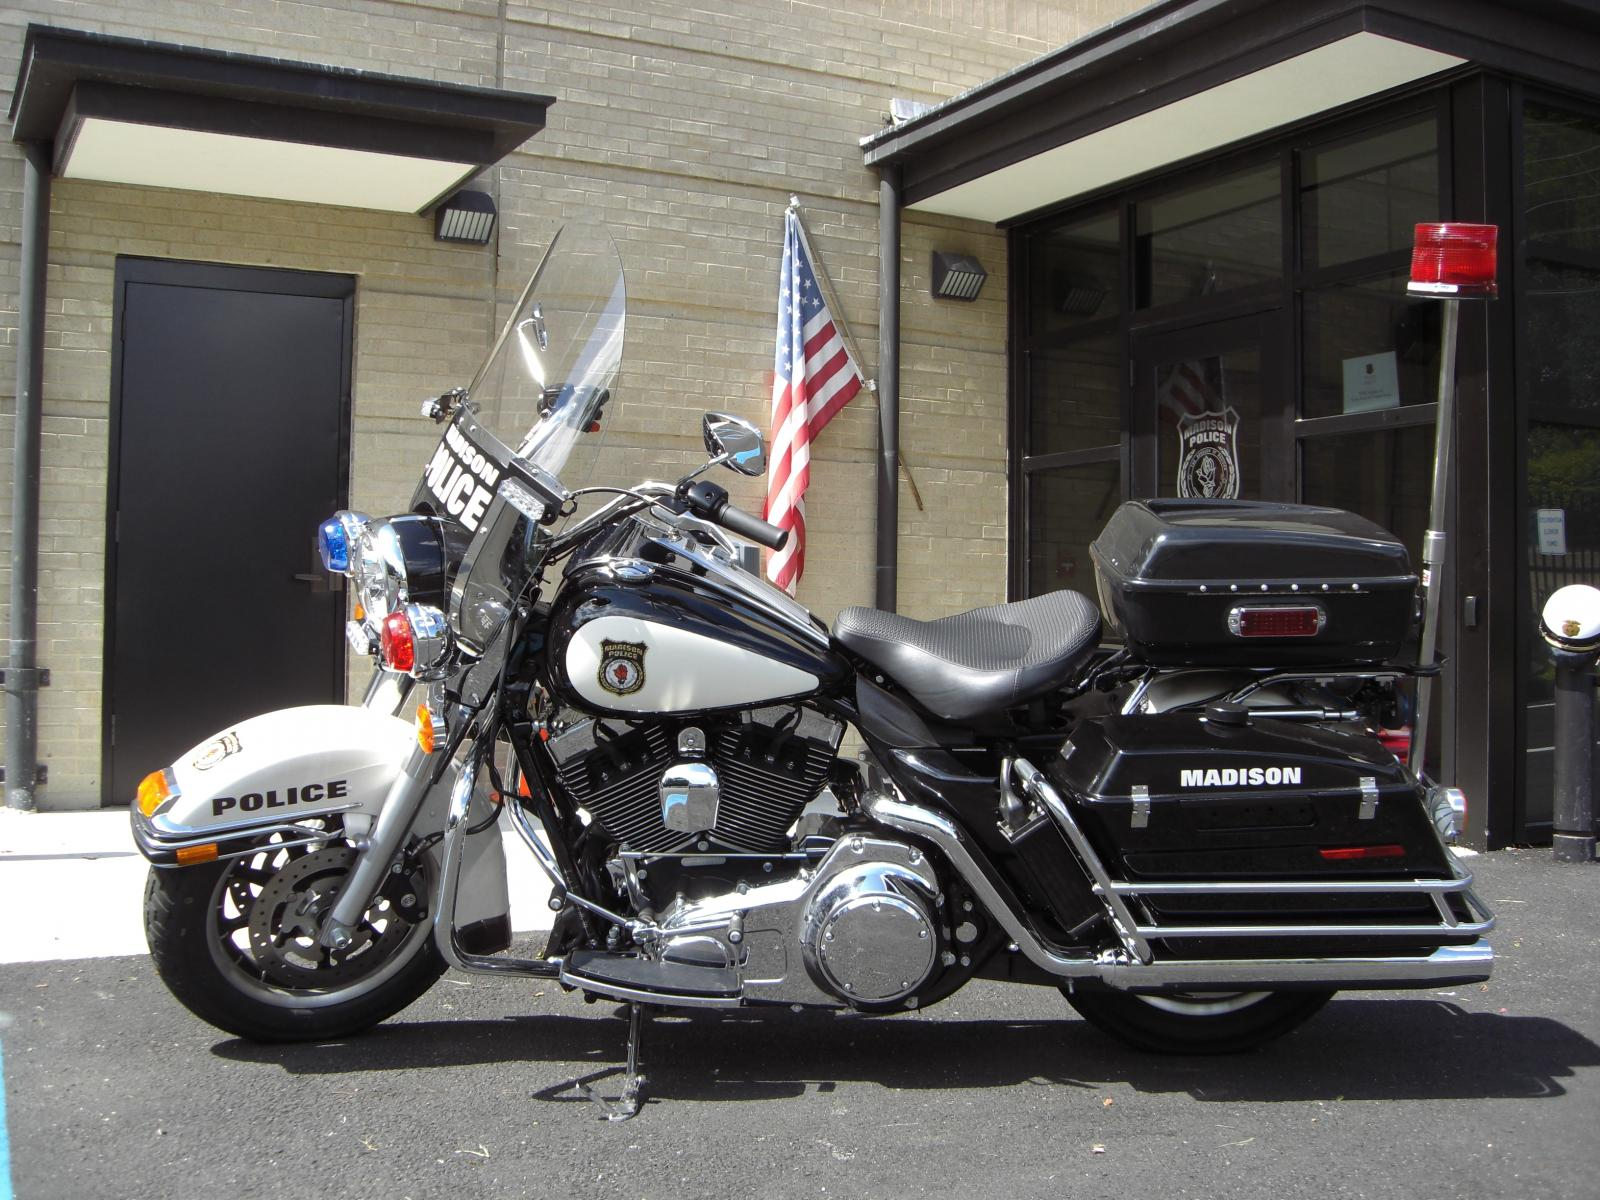 harleydavidson road king police 4?resize\\\\\=665%2C499 rupp snowmobile wiring diagram polaris sportsman 400 wiring Rupp Race Sleds at gsmx.co